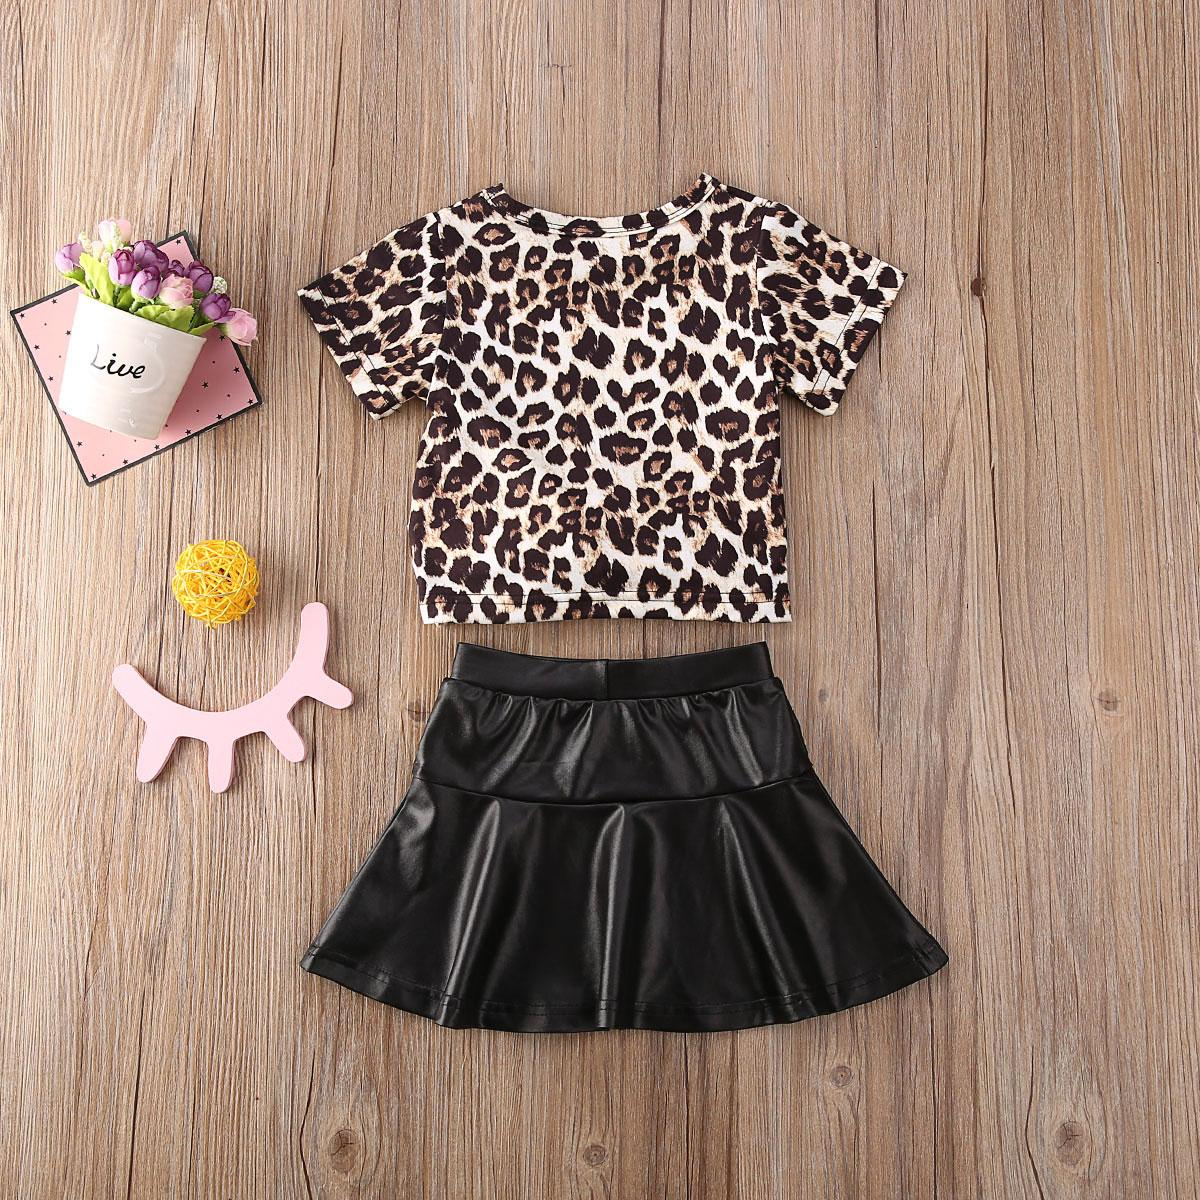 2020 Summer Toddler Kids Baby Girls Leopard Short Sleeve T-shirt Tops+ Leather Skirts 2Pcs Outfits Clothes 1-5T